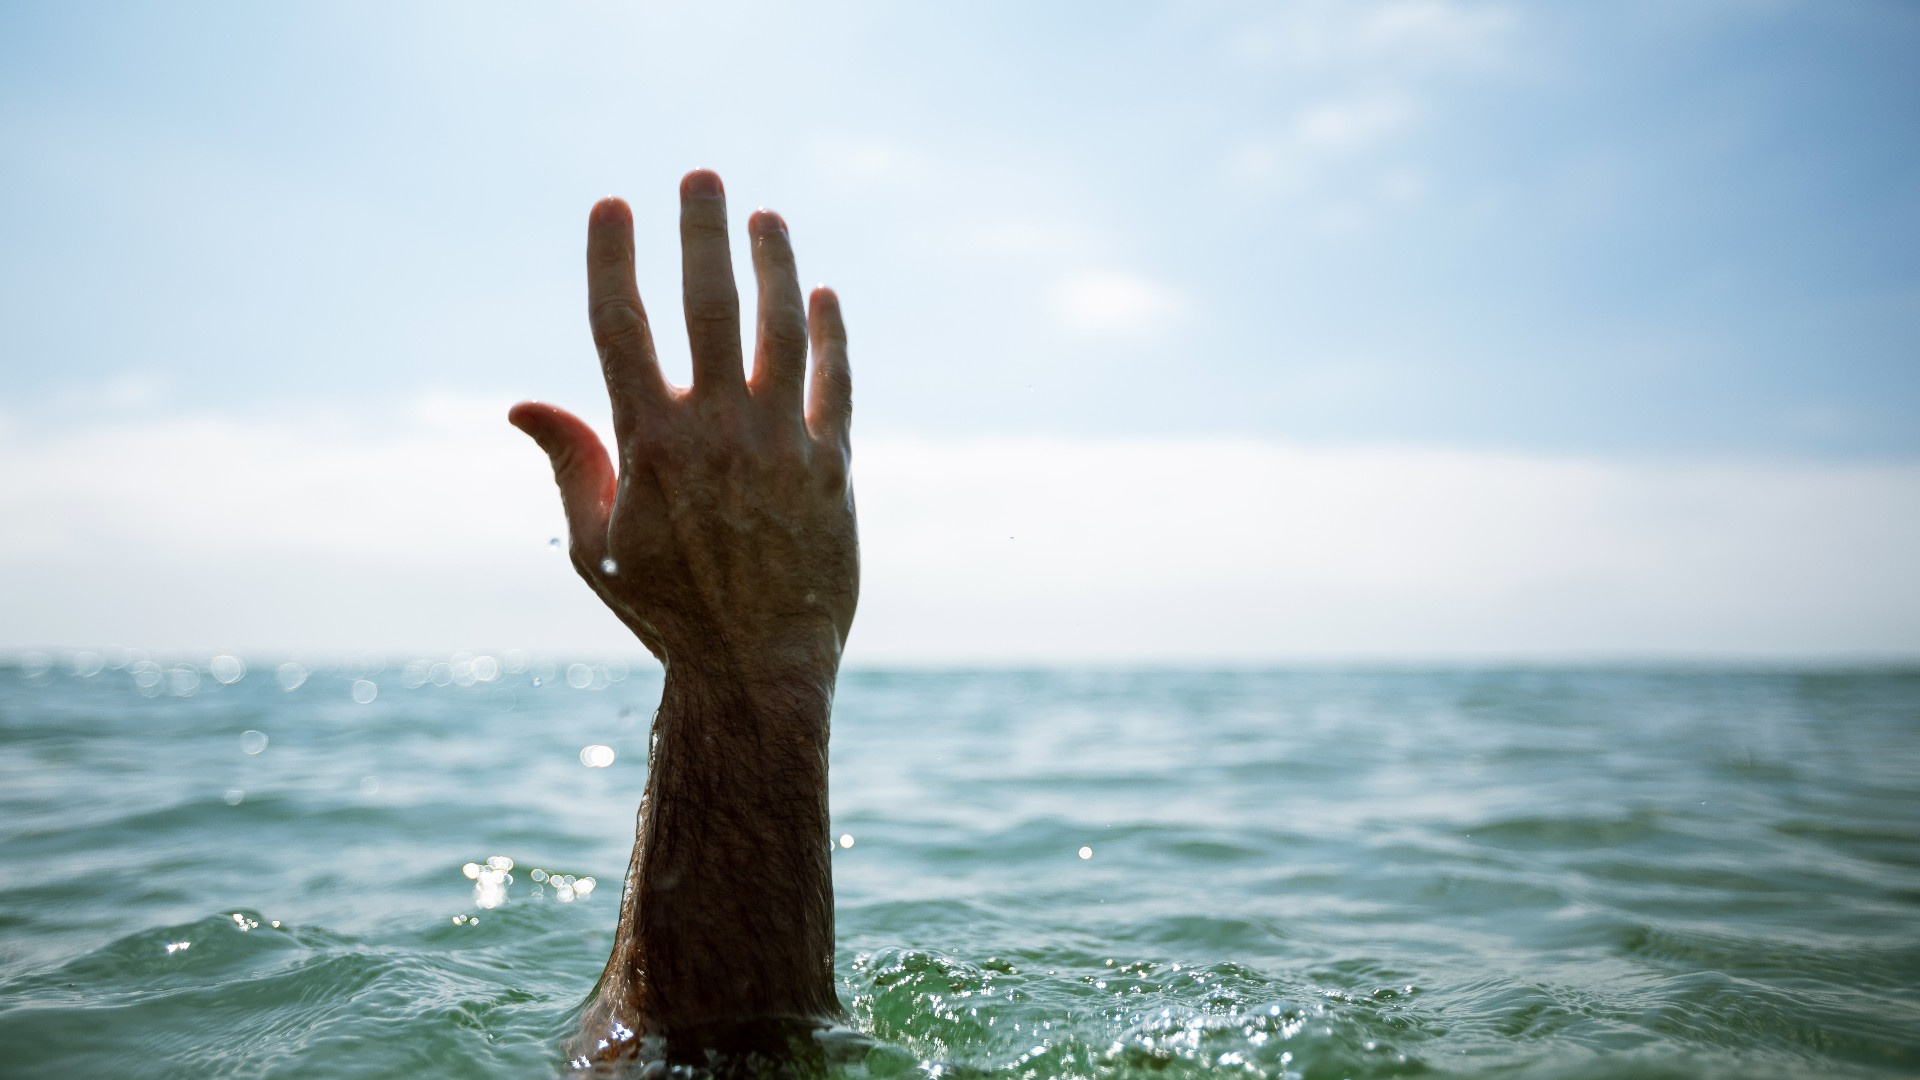 A hand is reaching up from the water